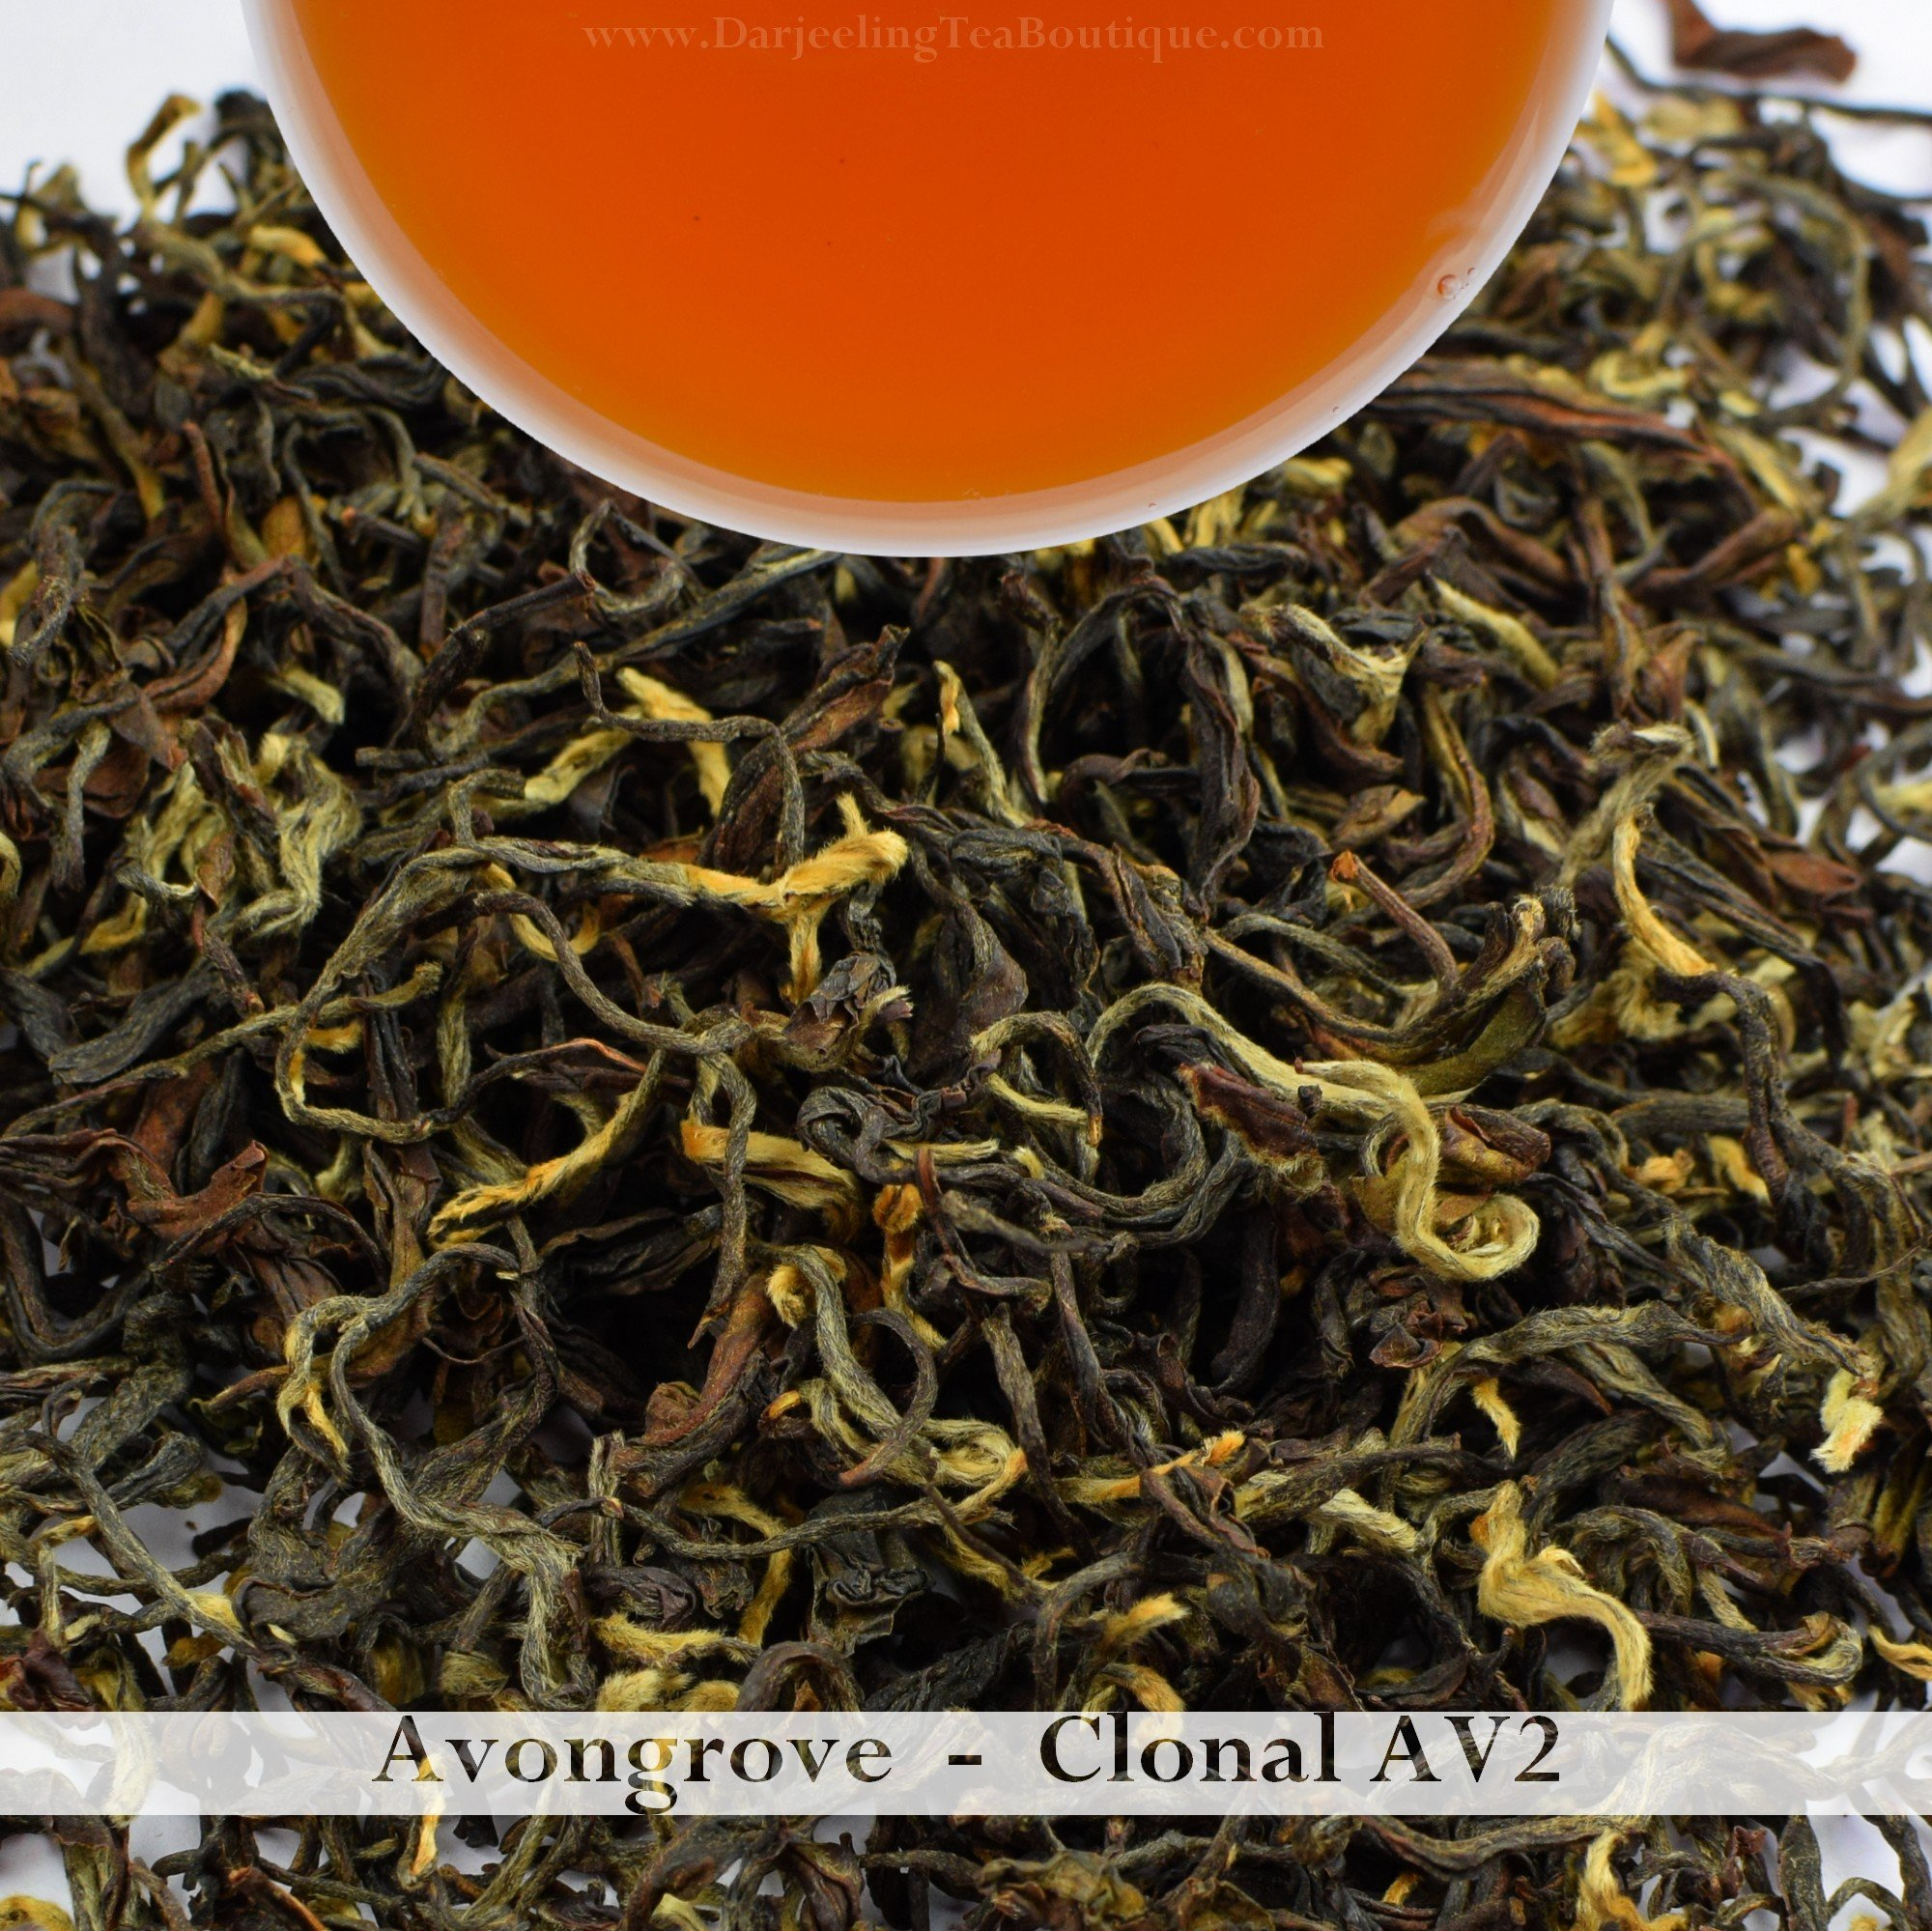 2017 AV2 Cultivar | Darjeeling 2nd Flush Tea | 500gm (17.63oz) | Pure Oragnic Tea from Avongrove | Bulk Wholesale Pack | Darjeeling Tea Boutique by Darjeeling Tea Boutique (Image #1)